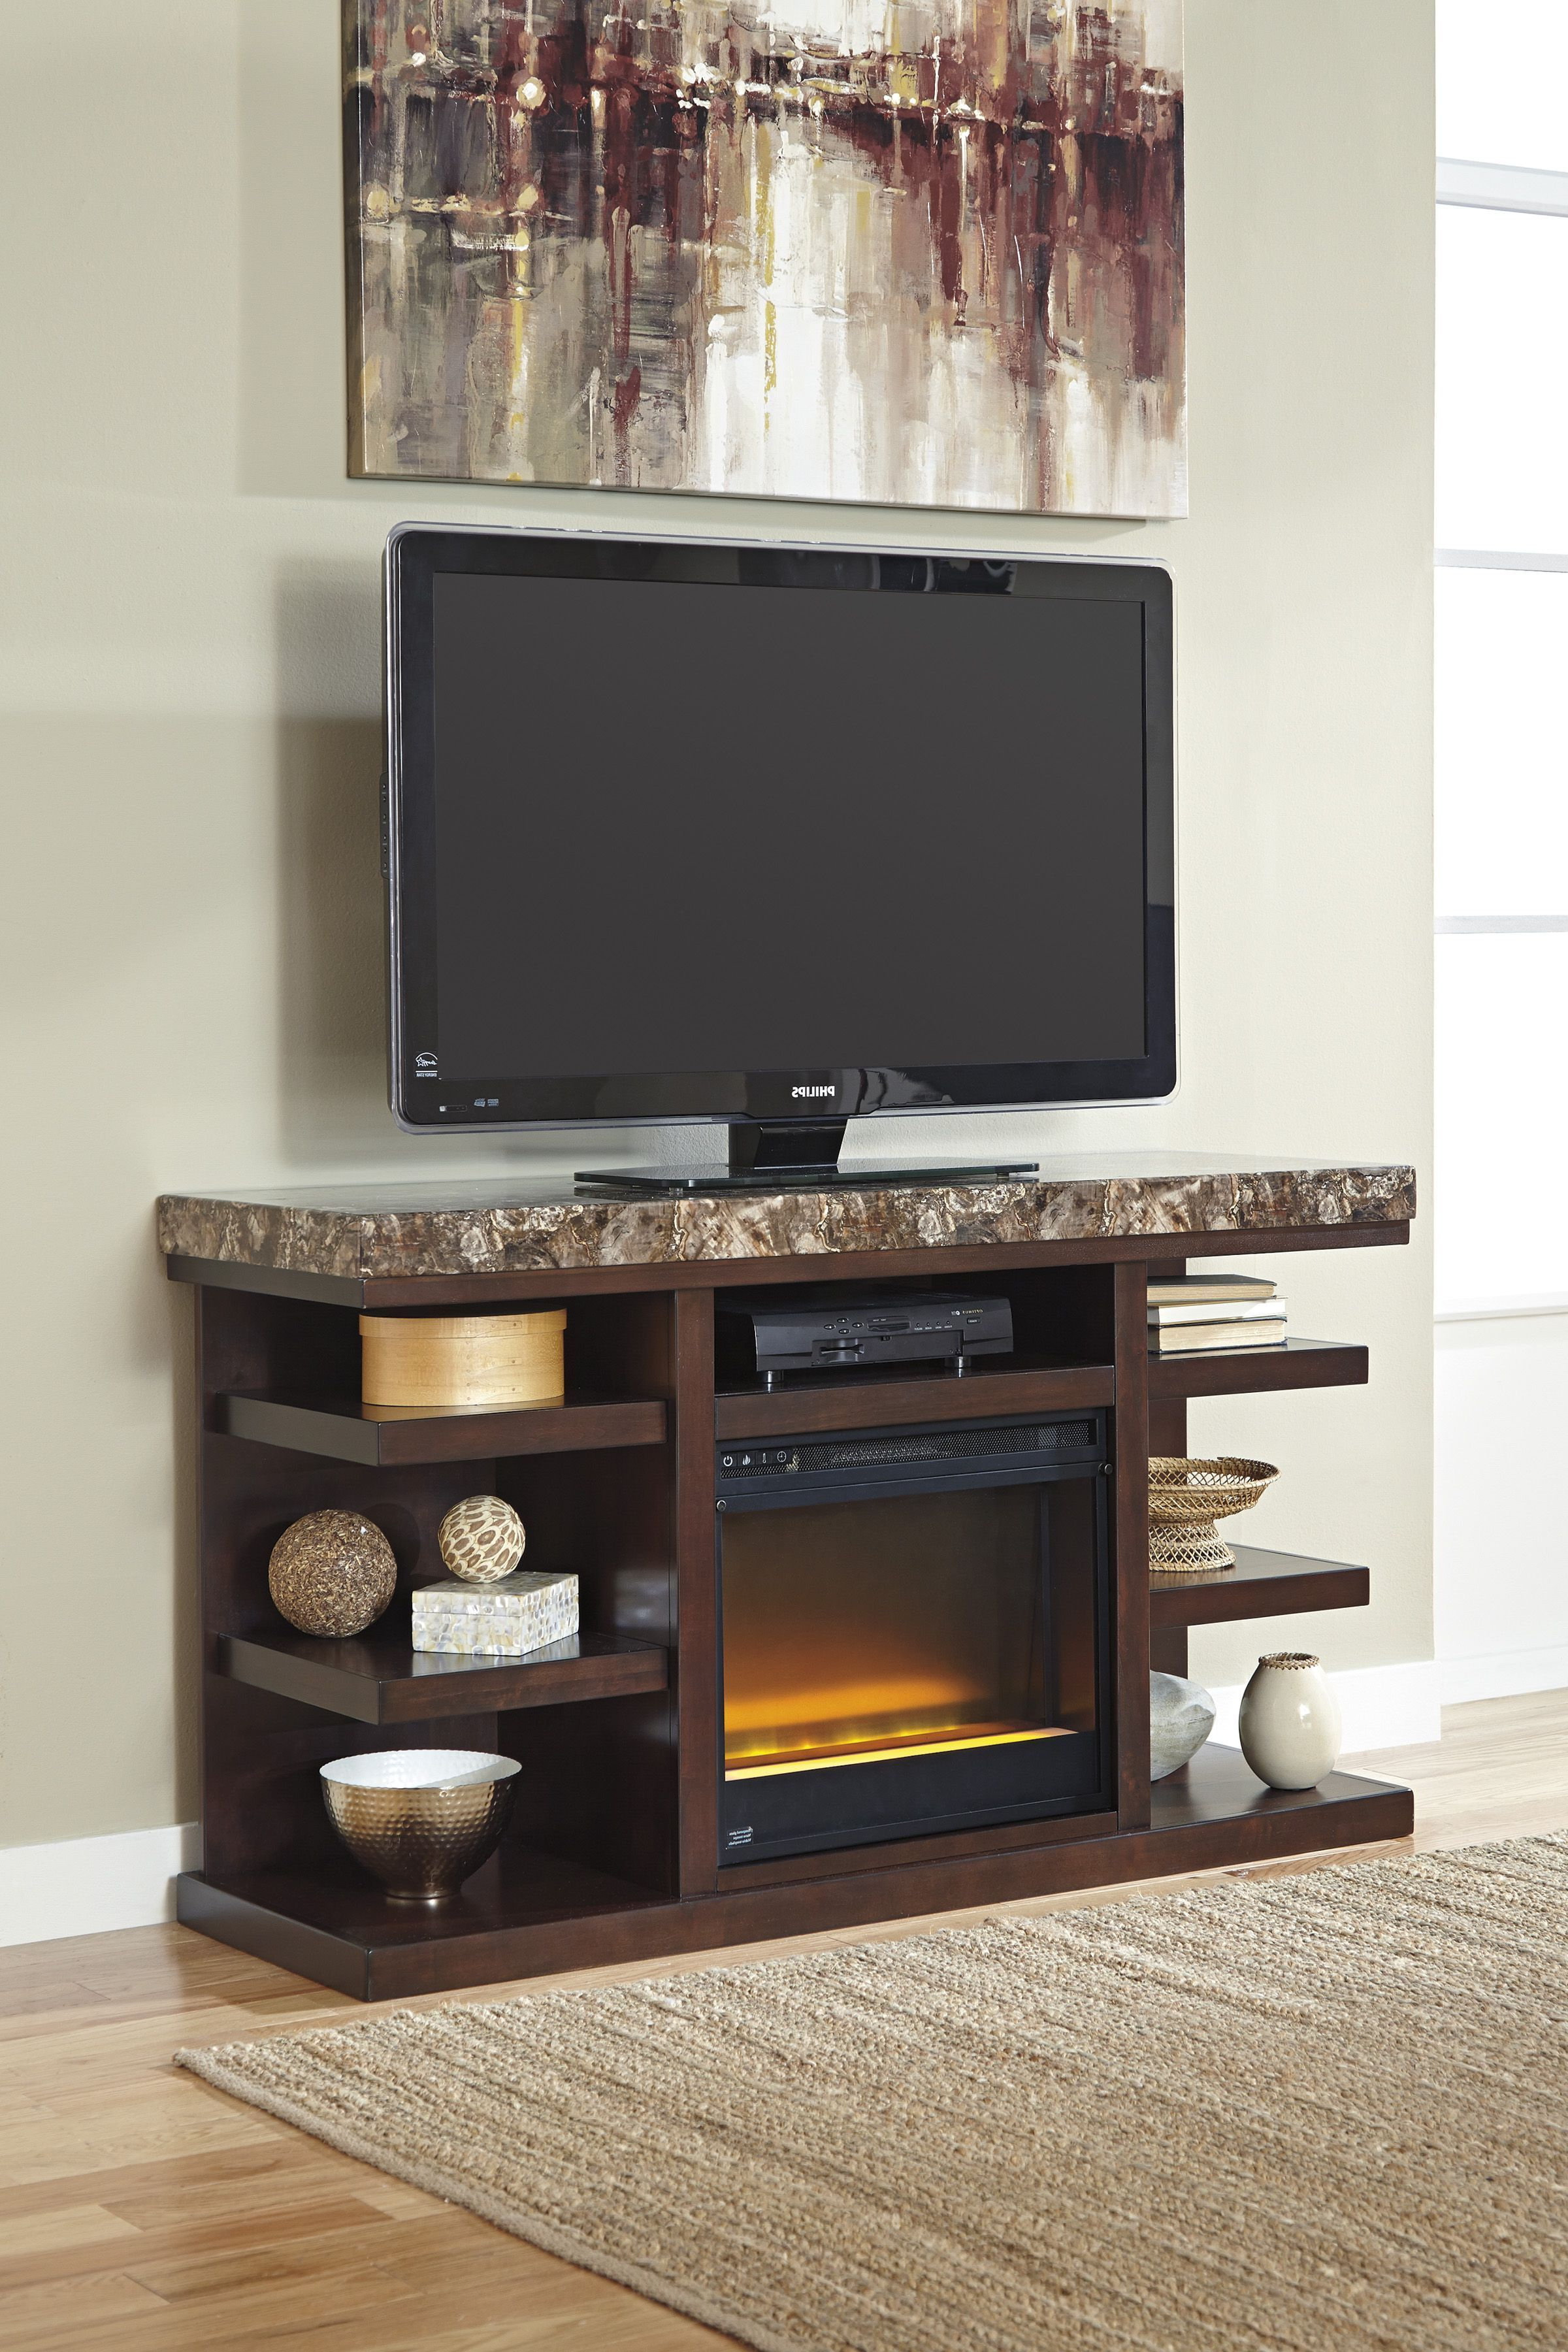 Projects To Try With Edwin Black 64 Inch Tv Stands (View 17 of 20)